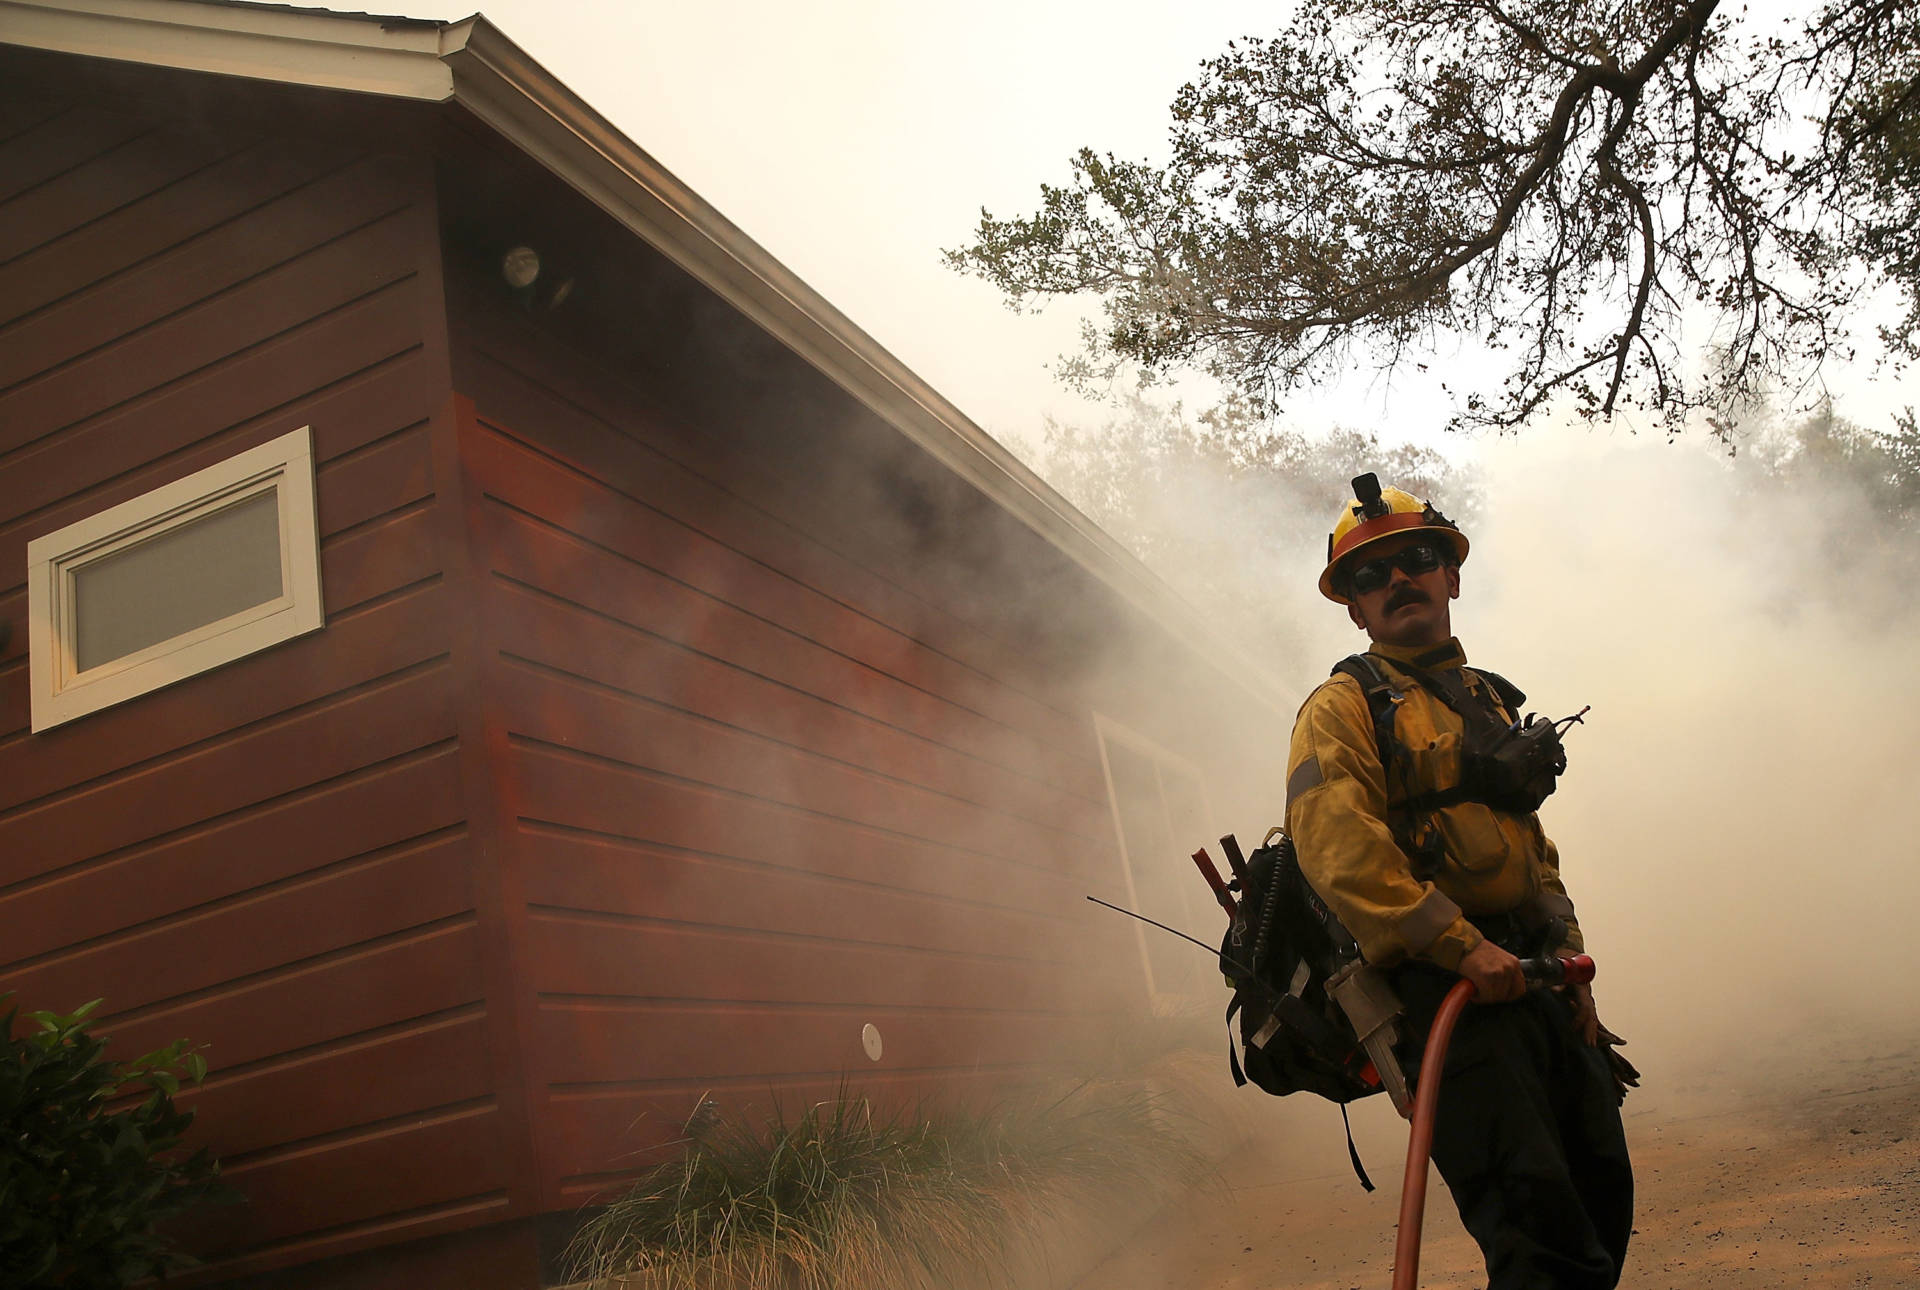 A Los Angeles County firefighter monitors approaching flames near a building as an out-of-control wildfire moves through the area on Oct. 9, 2017, in Yountville, north of Napa. Justin Sullivan/Getty Images